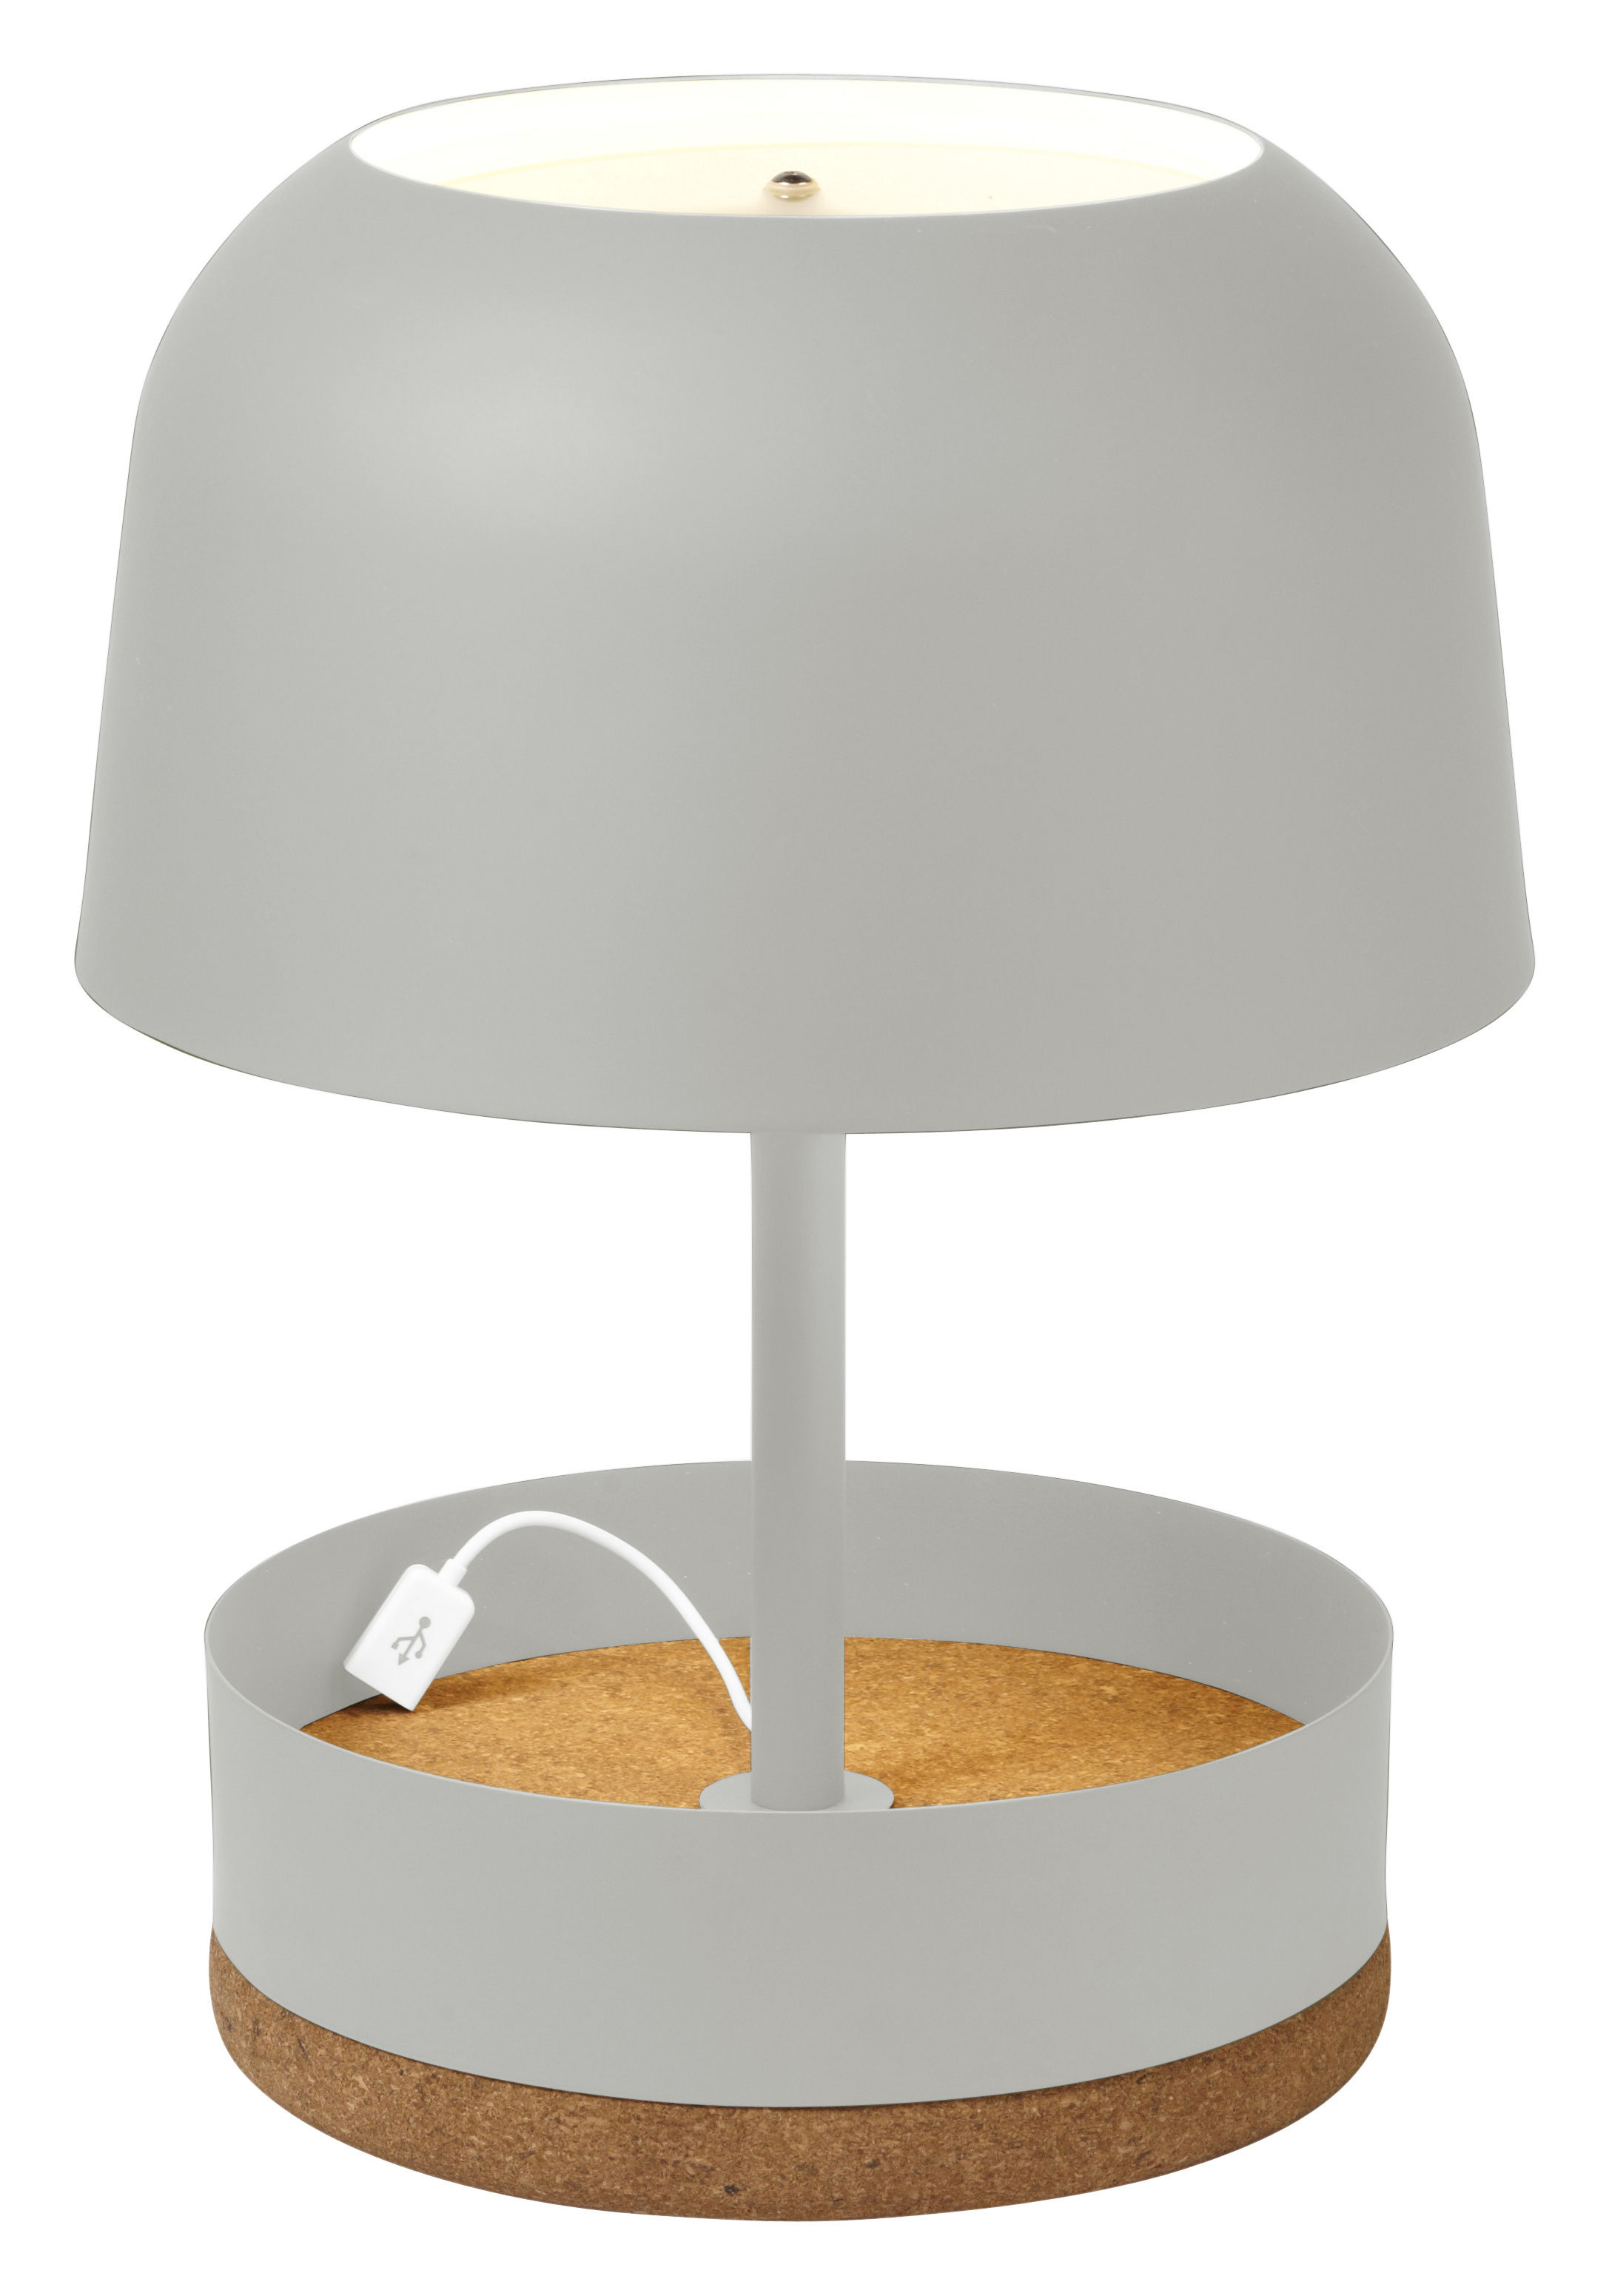 Ordinaire Hodge Podge USB Table Lamp   With USB Port   H 39,5 Cm Off White By  Forestier   Made In Design UK